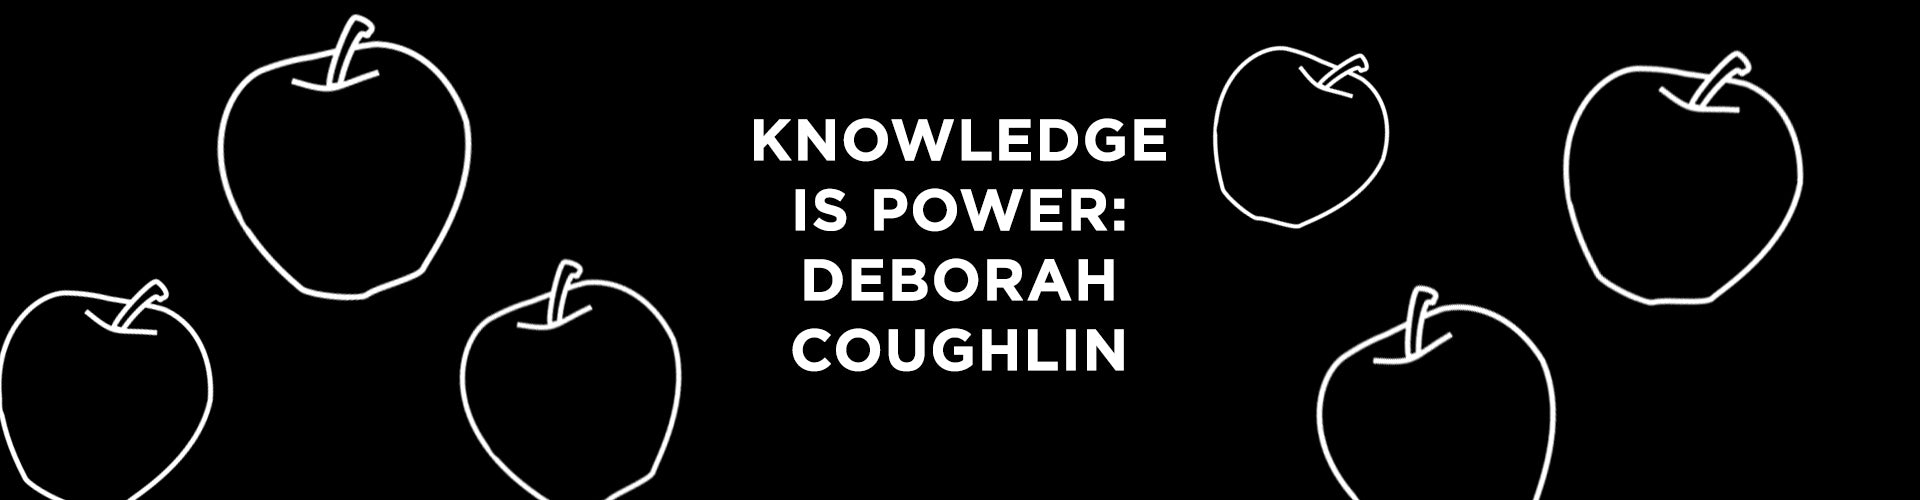 Knowledge is Power: Meet Deborah Coughlin